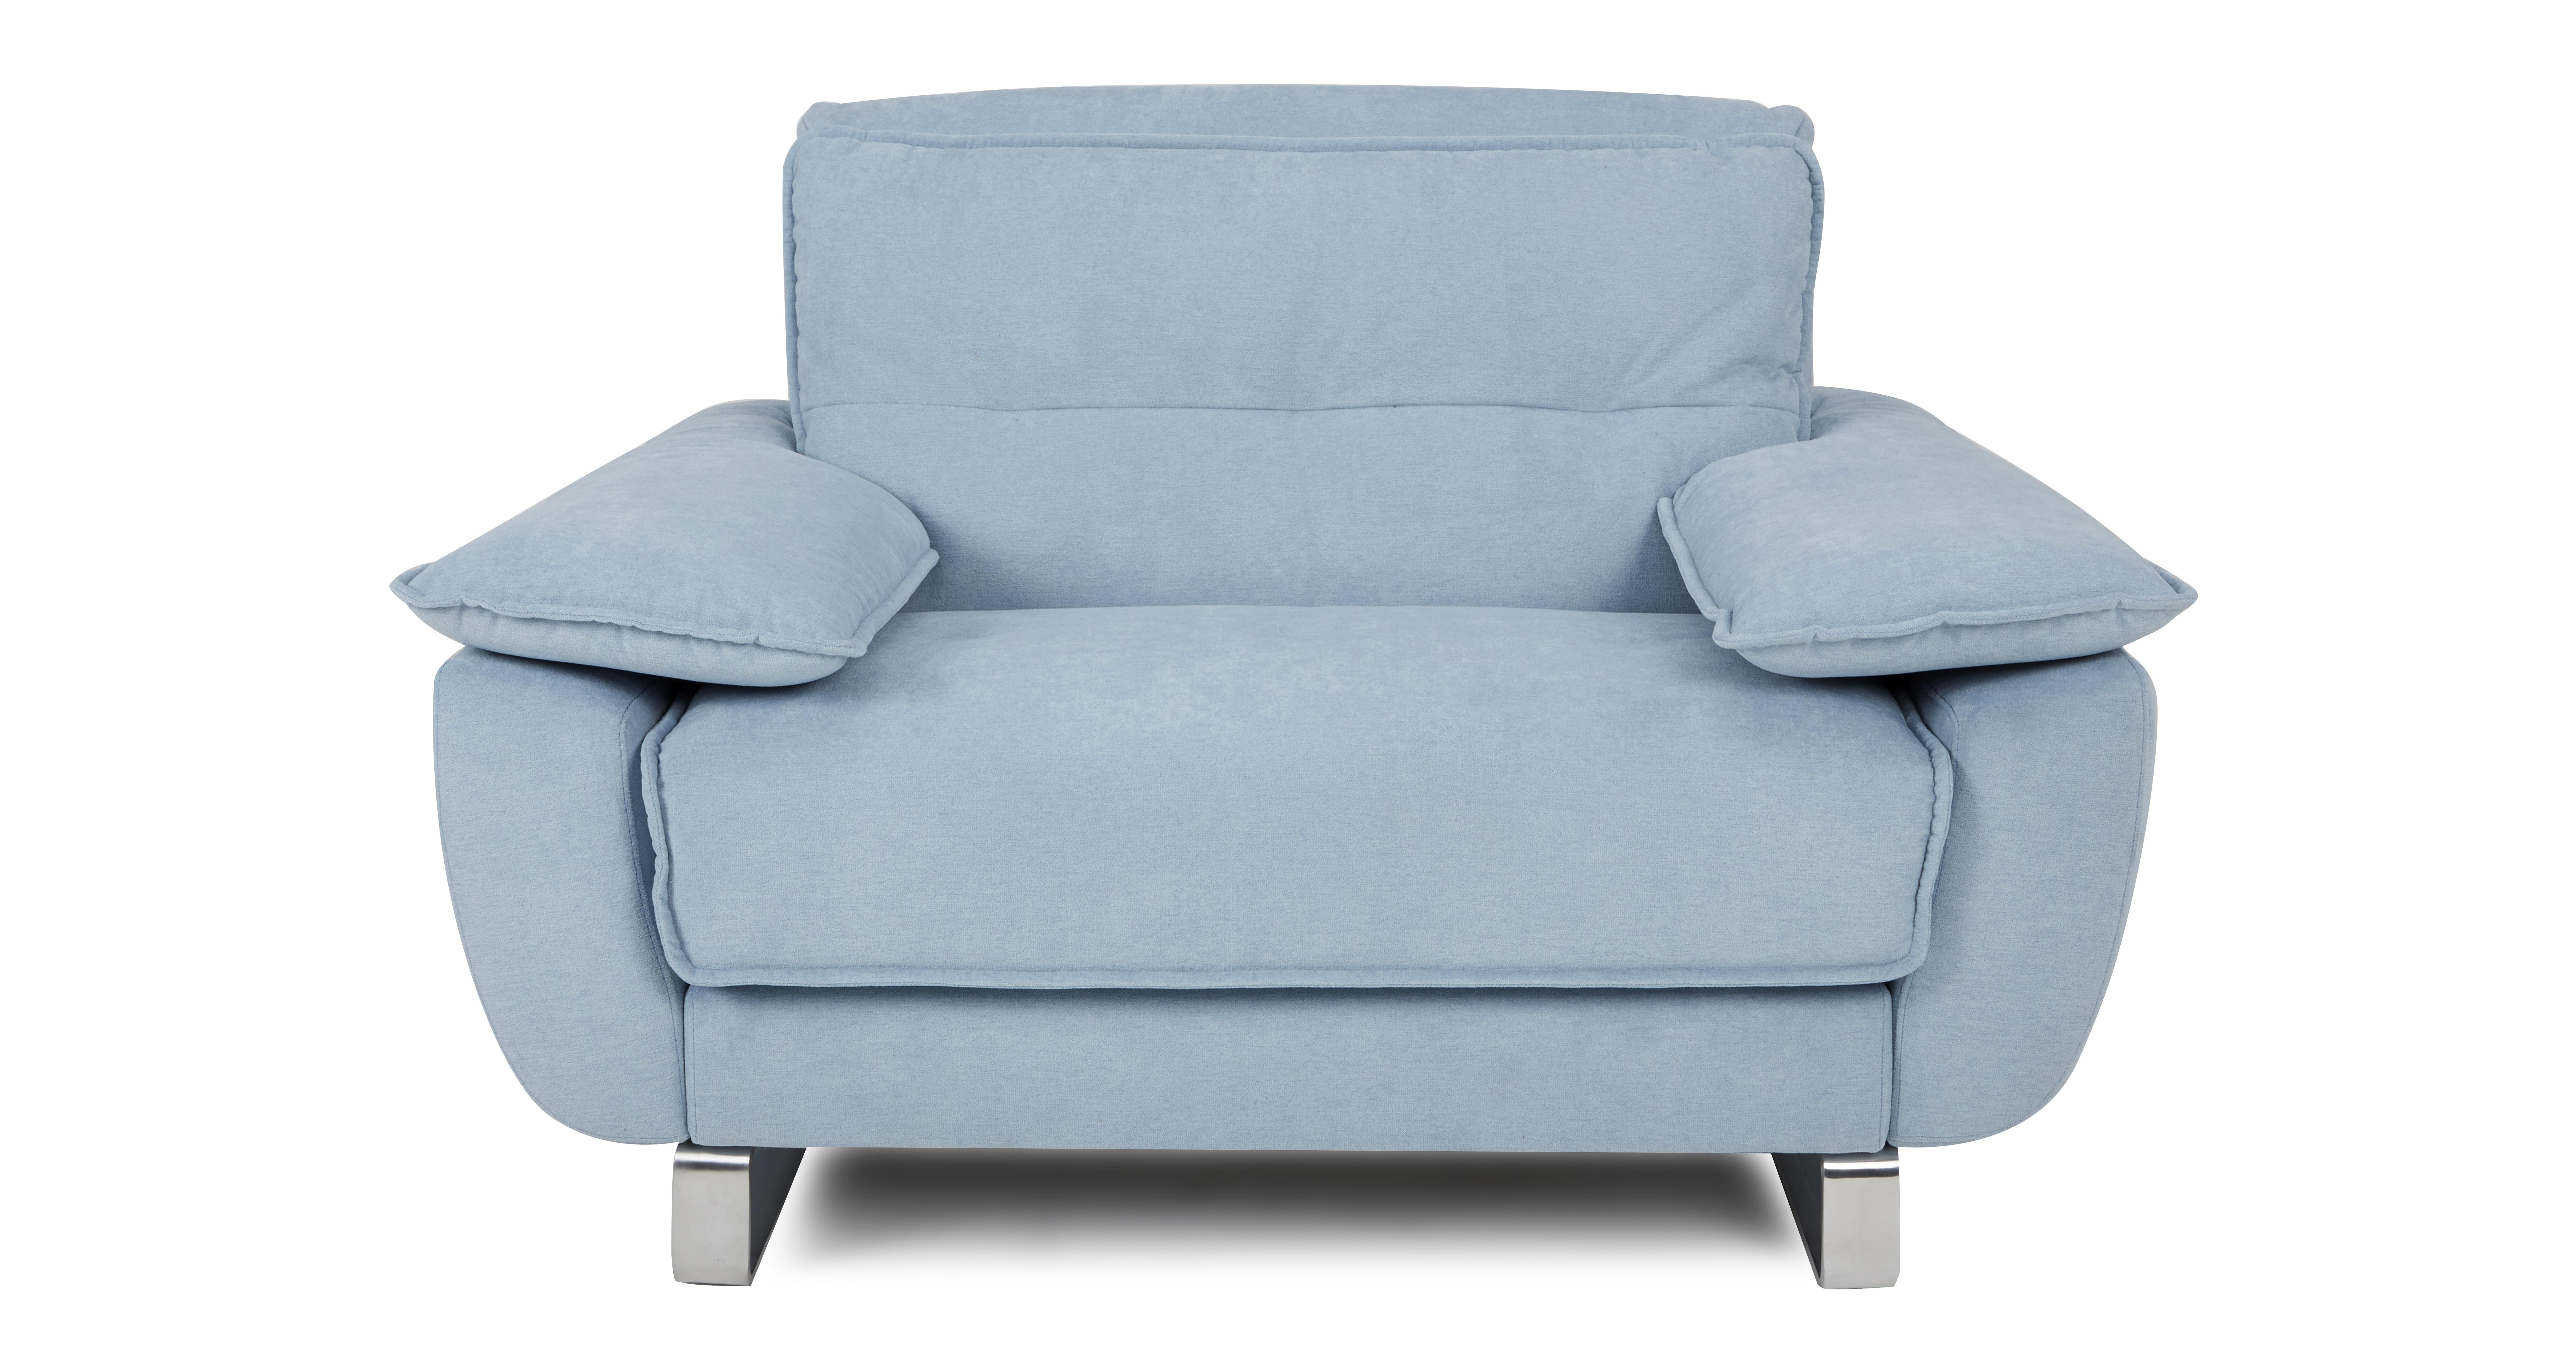 Chair Armchair Sofa Bed Sofa Bed Armchair Thesofa Sydney With Regard To Single Seat Sofa Chairs (Image 6 of 15)